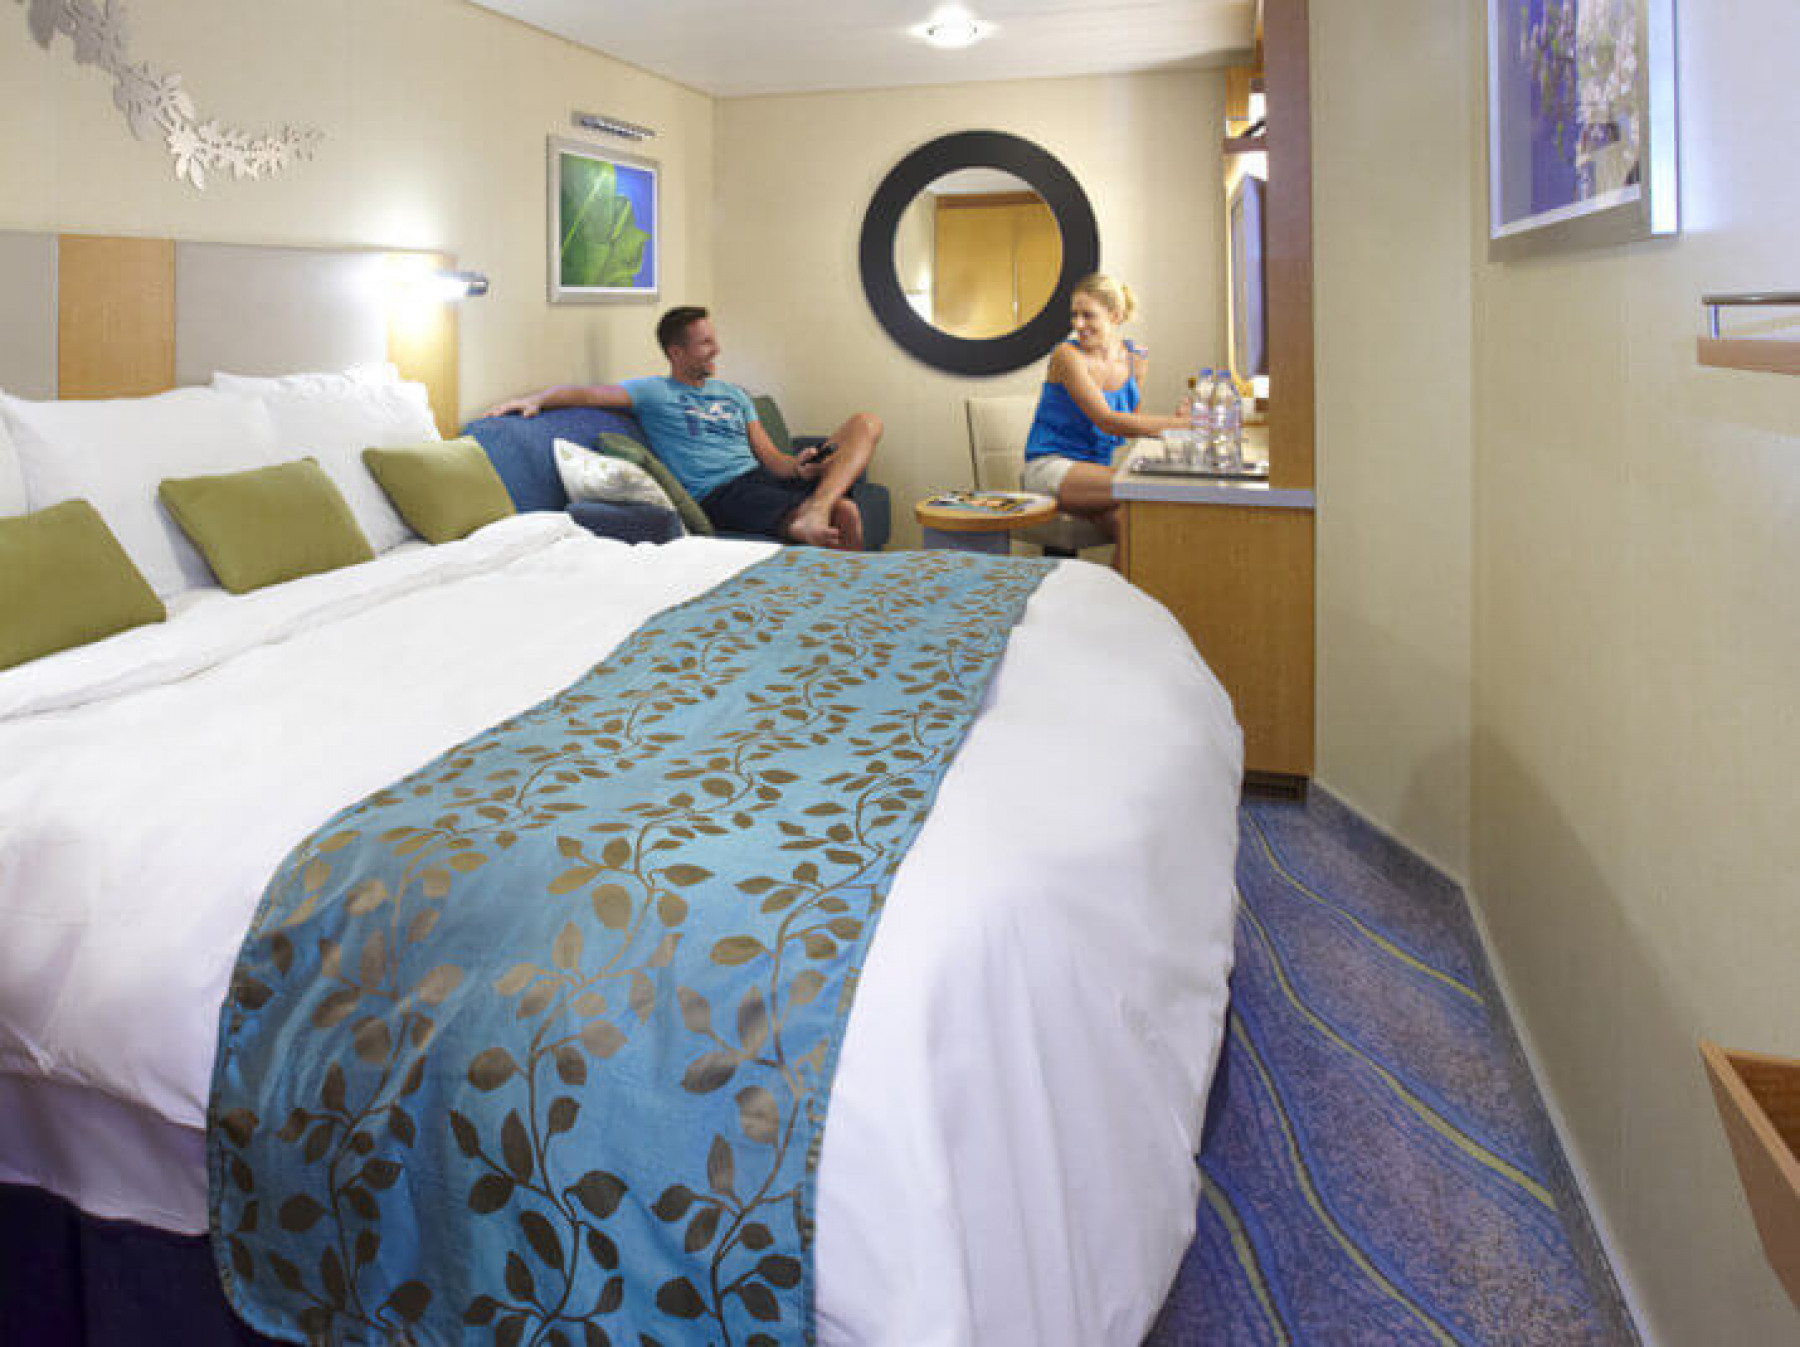 Royal Caribbean International Harmony of the seas interior room.jpg